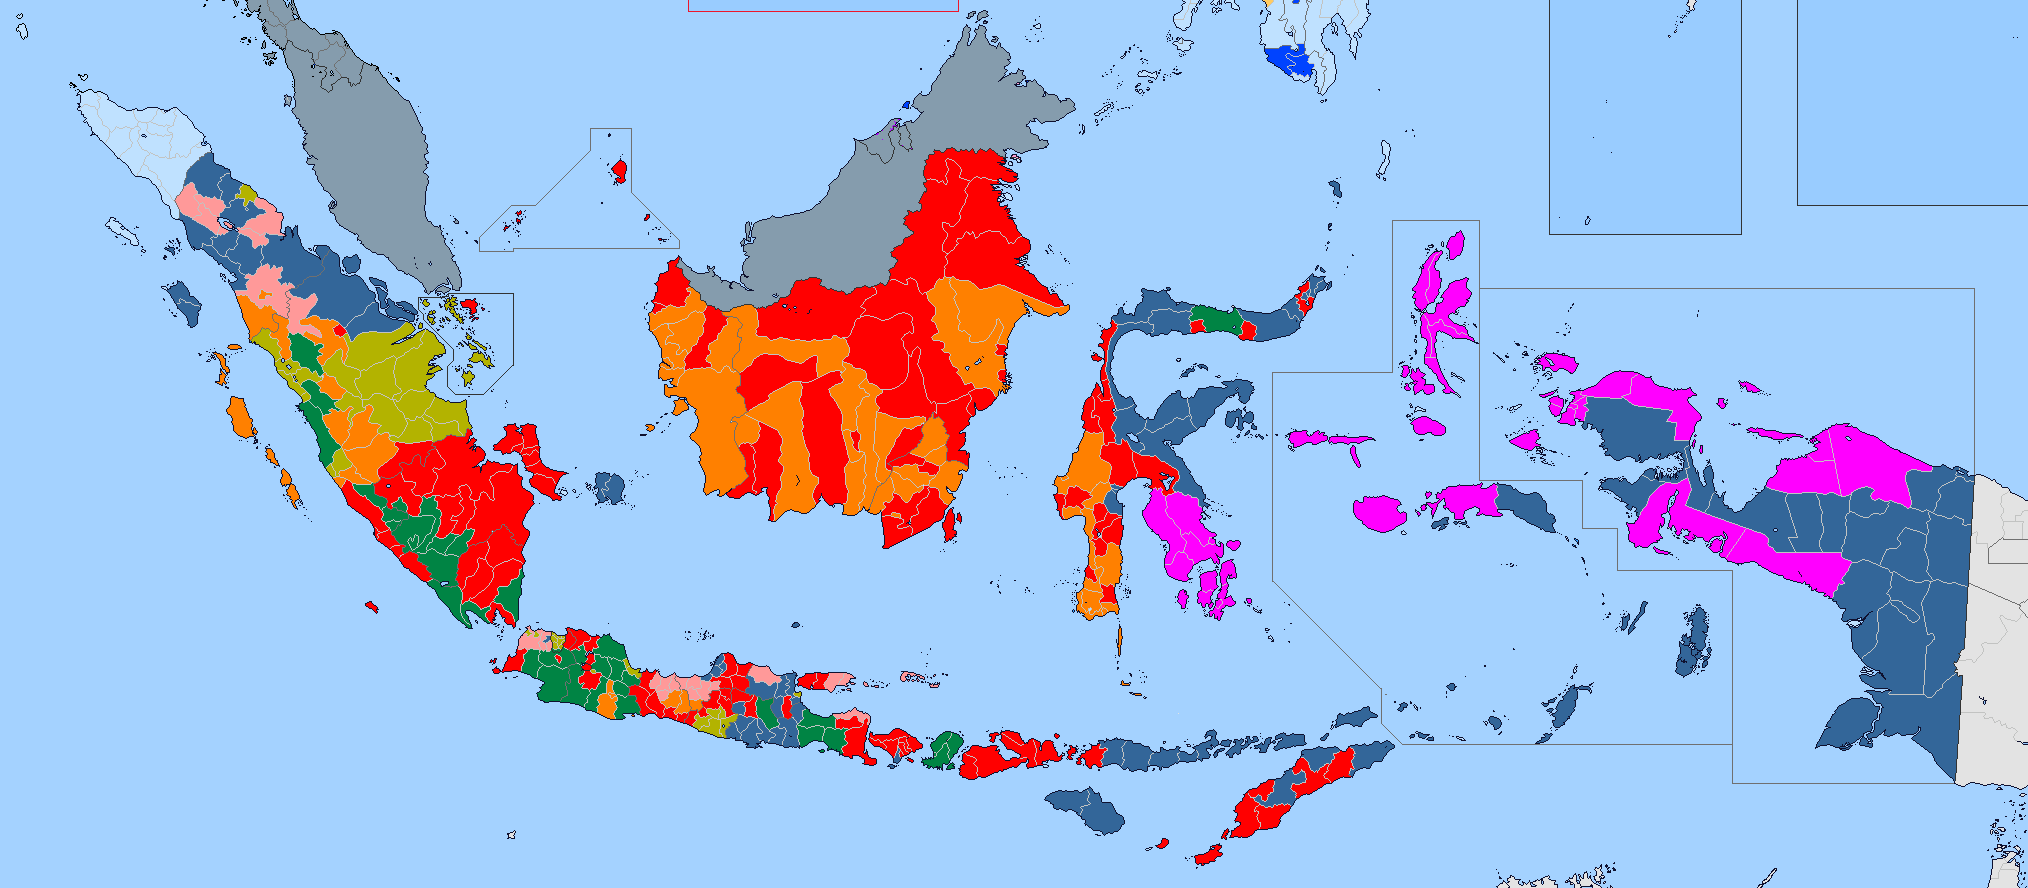 indonesiae1955map.png